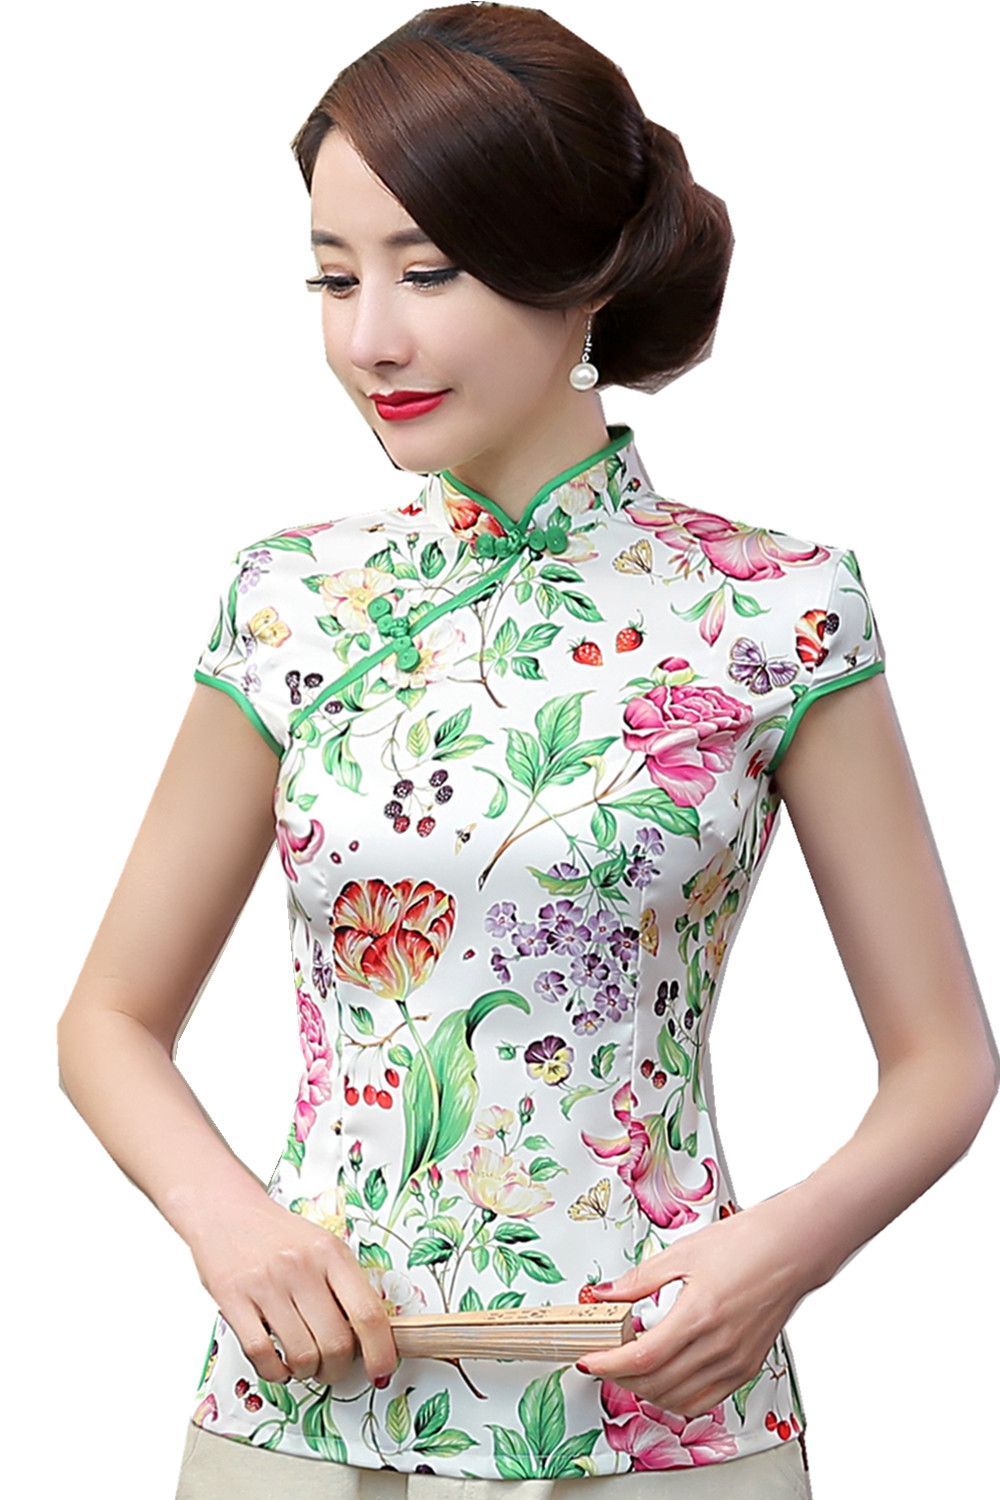 86610a653b6 Shanghai Story Womens Tops And Blouses Chinese Tops Silk Cheongsam Top  Traditional Chinese Top blouse 2